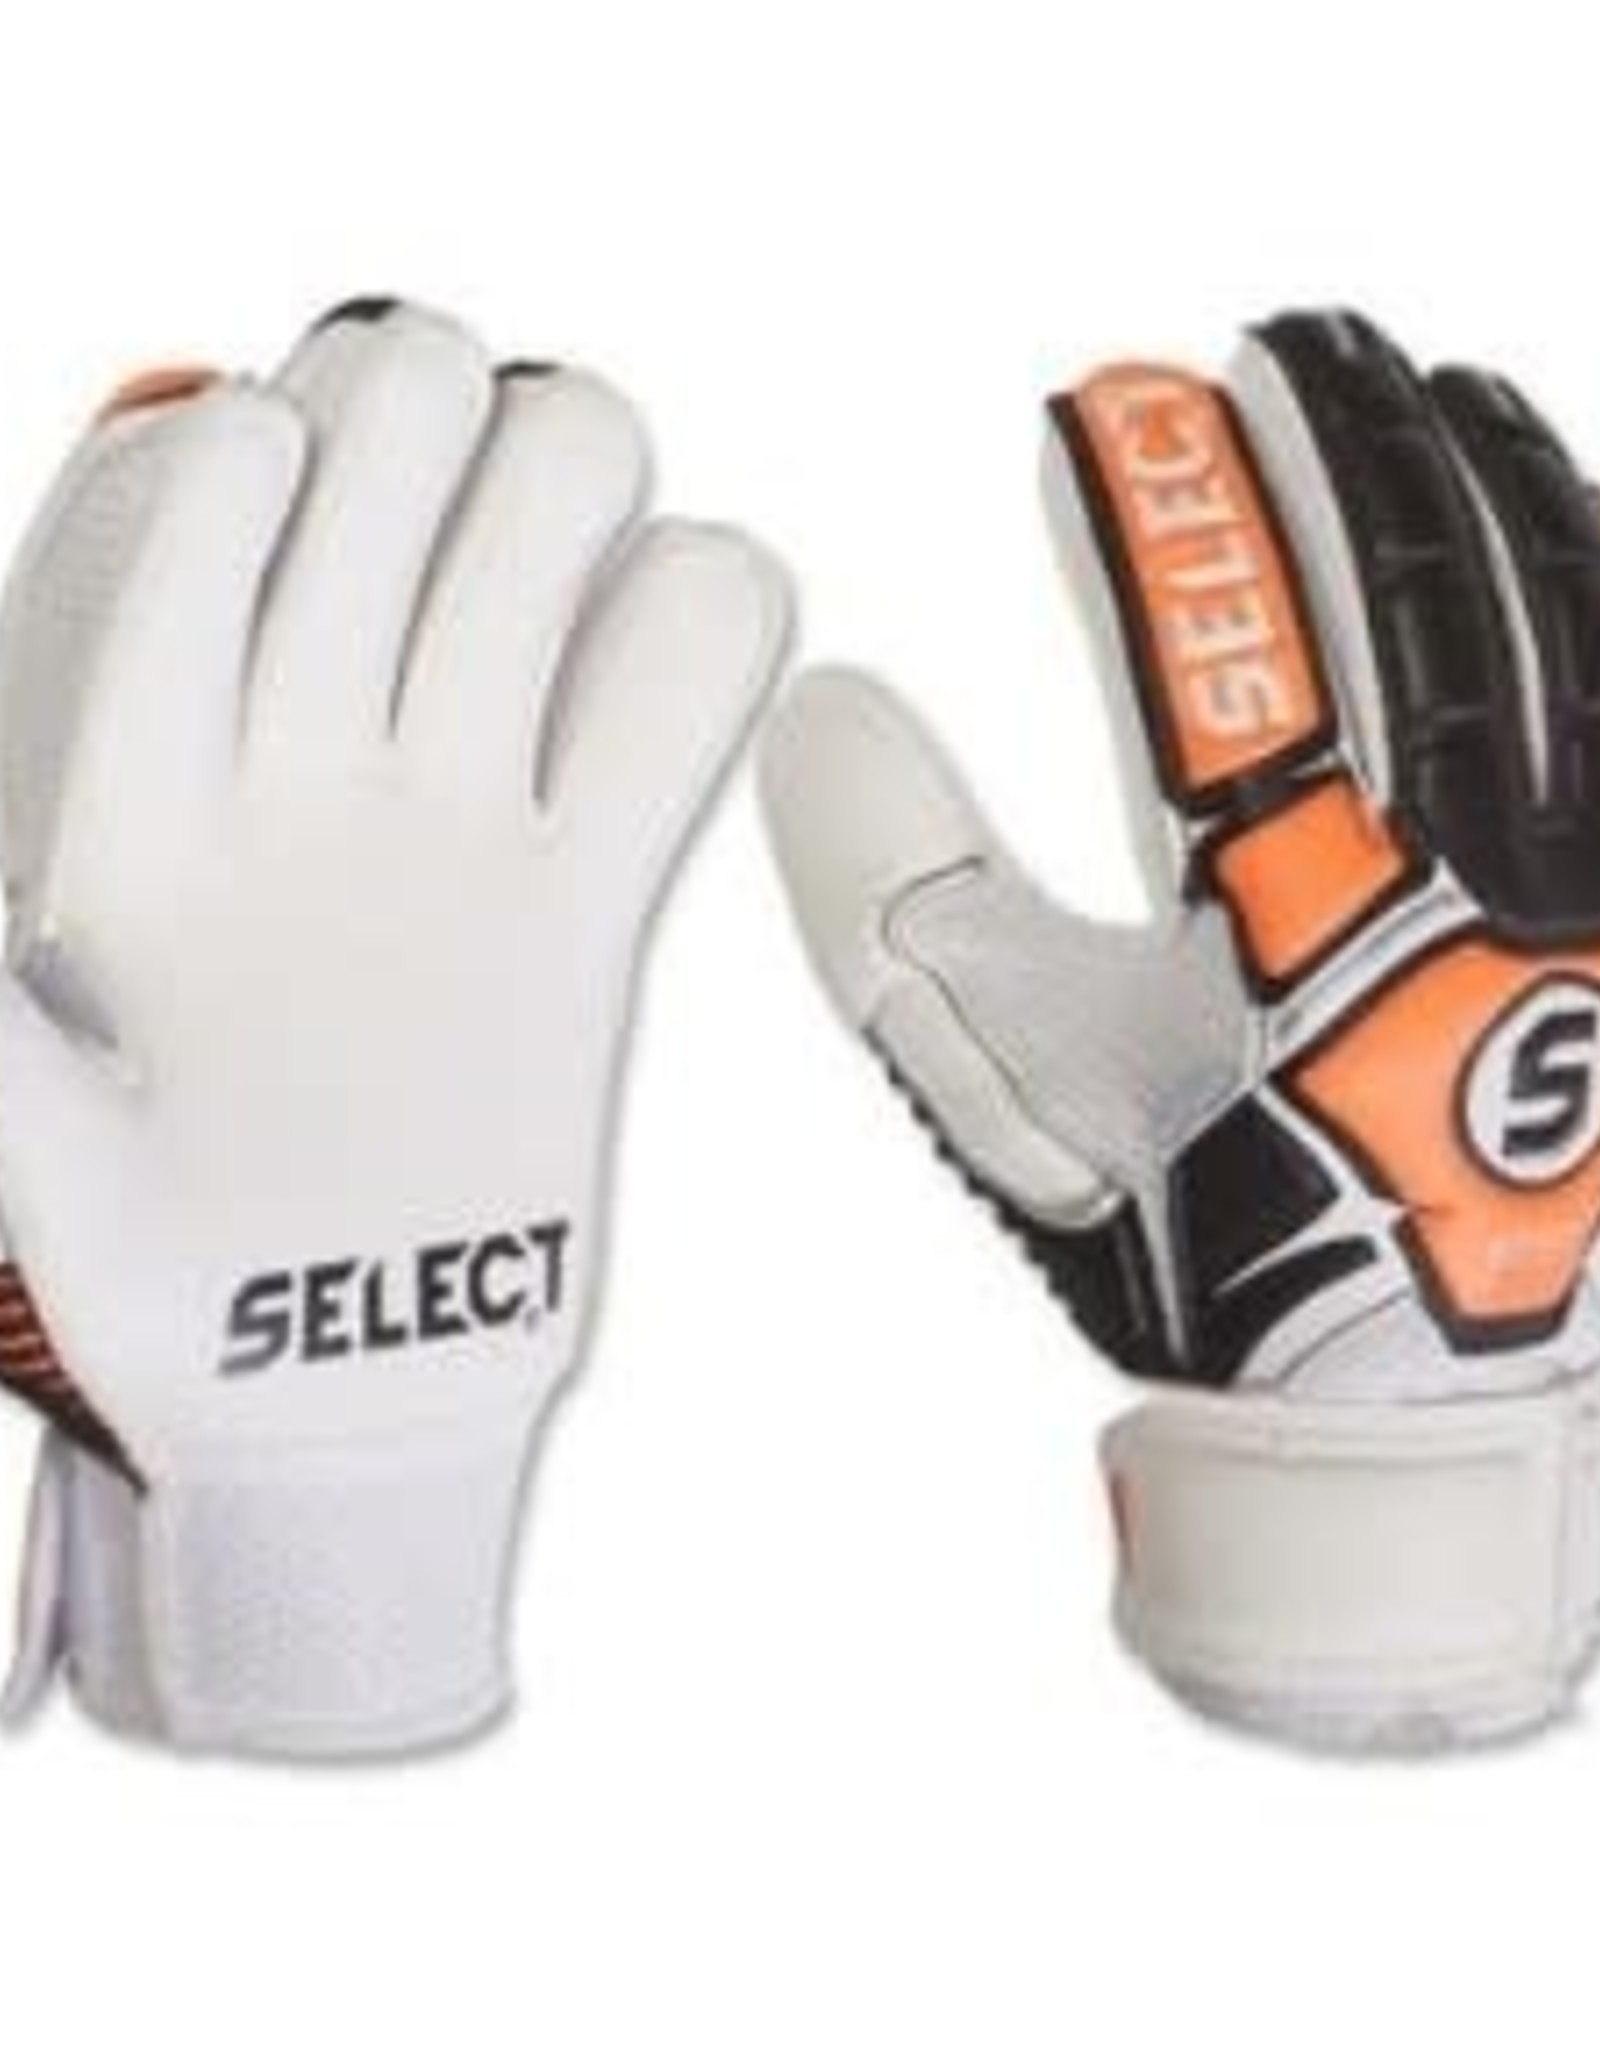 Select Select Youth 03 Guard Goalkeeper Glove